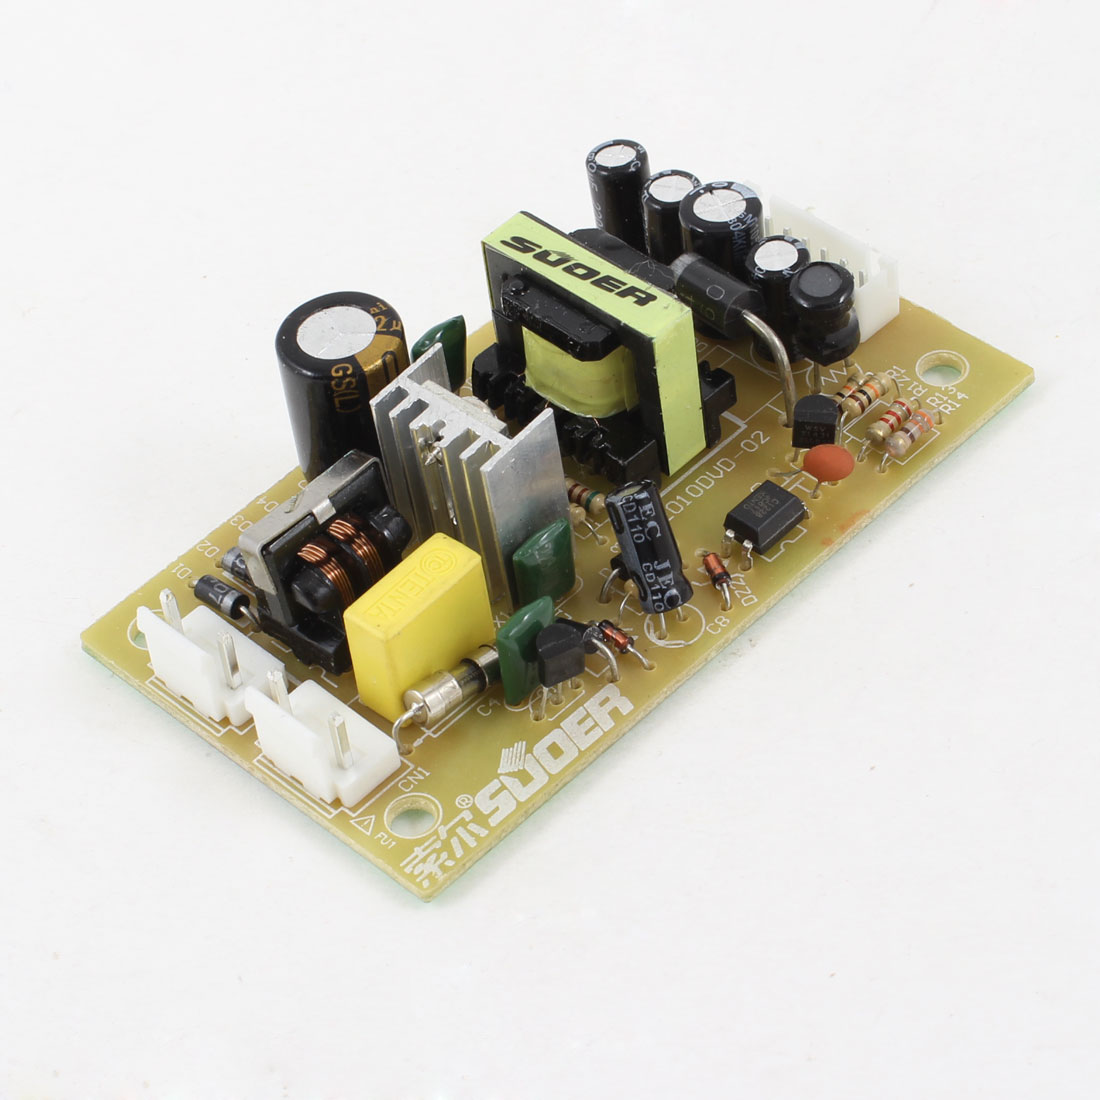 "Universal Spare Part Power Supply Board 3.3"" x 2"" x 1"" for DVD Players"